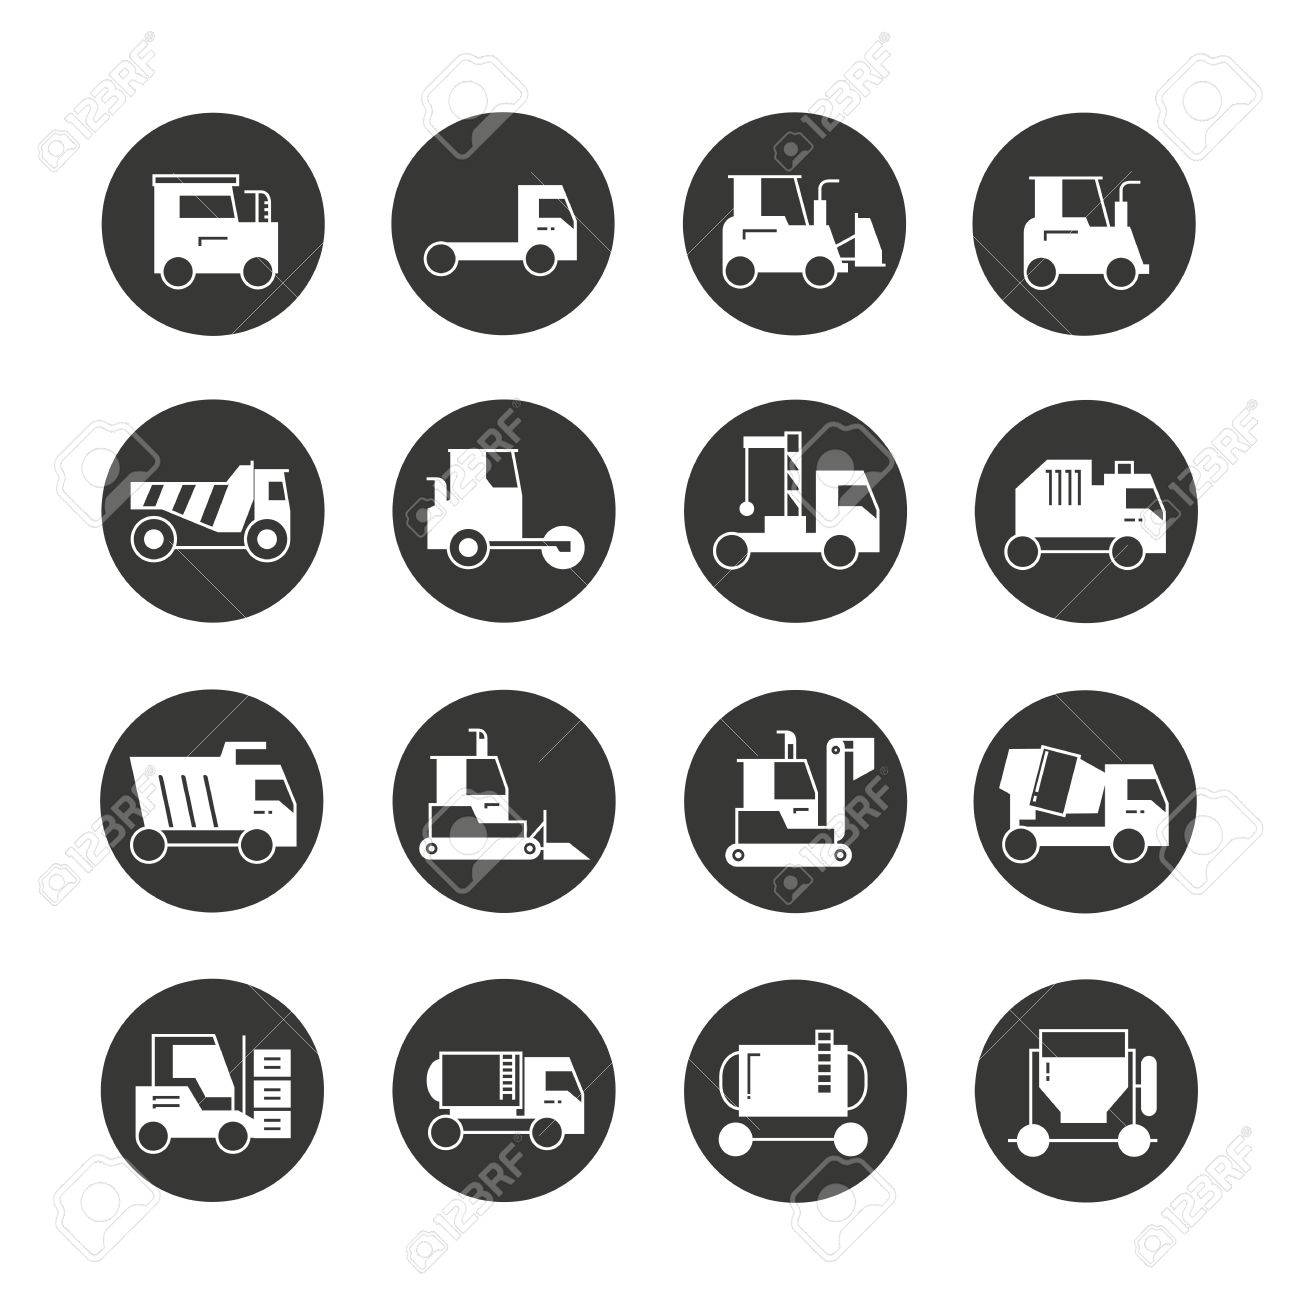 Construction Equipment Icons Royalty Free Cliparts Vectors And